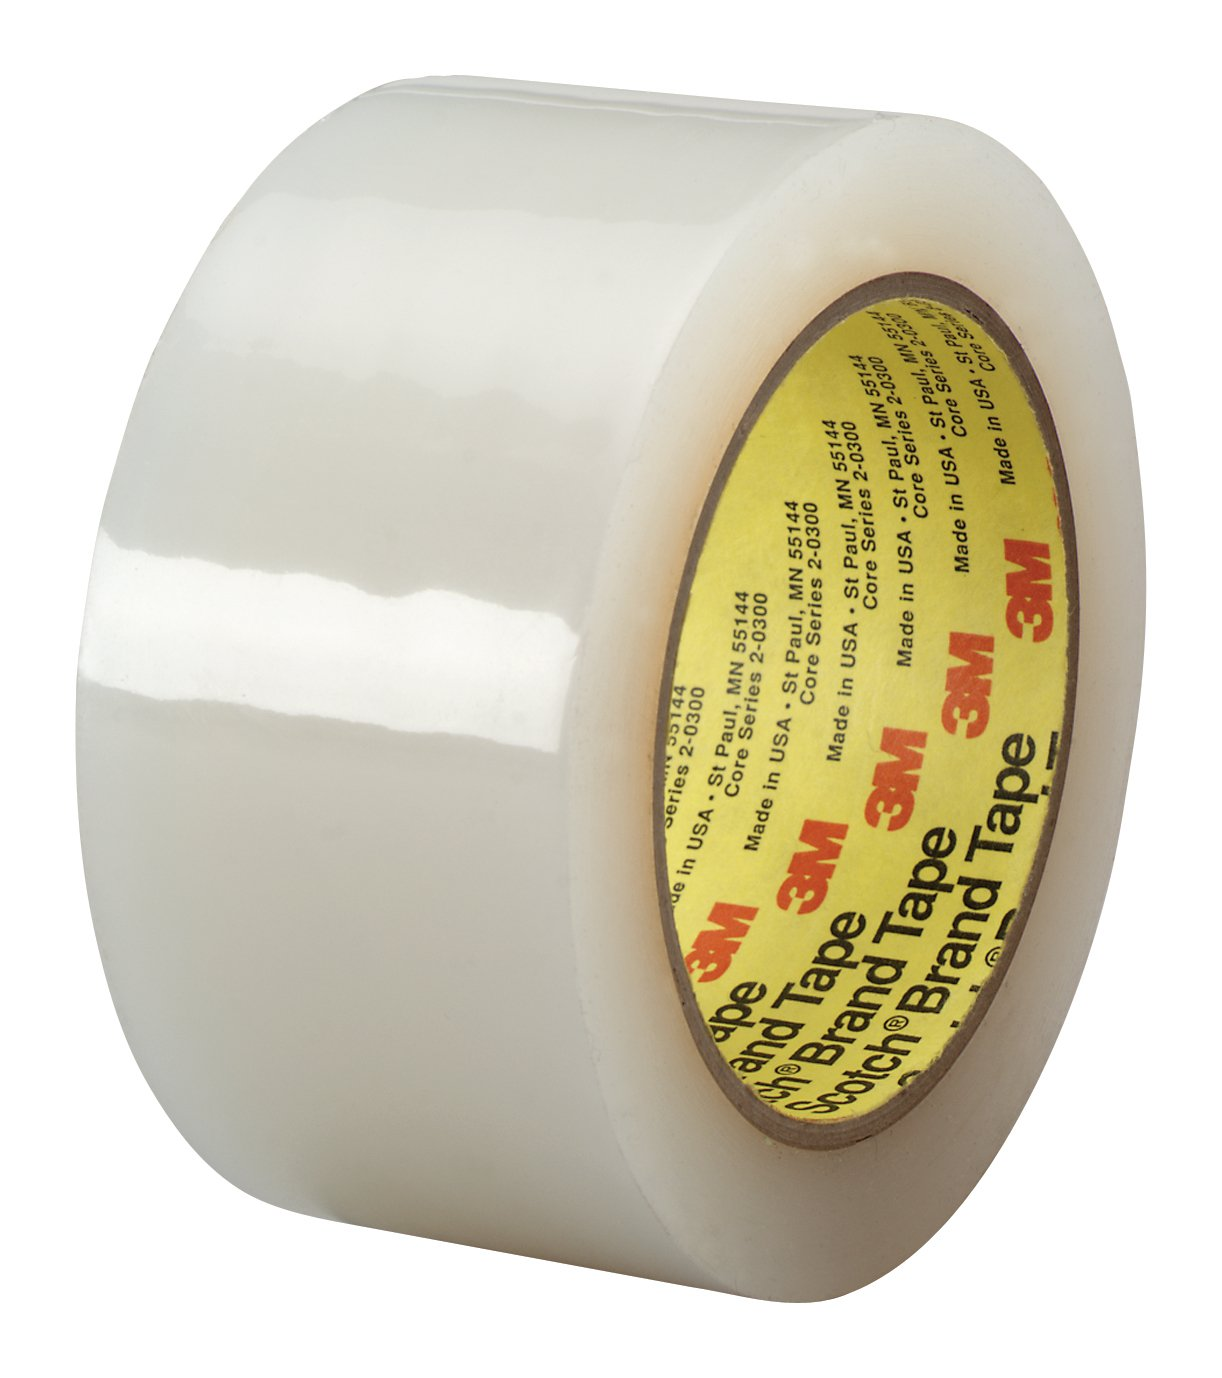 3M Polyethylene Film Tape 483 Transparent, 1 in x 36 yd 5.3 mil, Conveniently Packaged (Pack of 1)